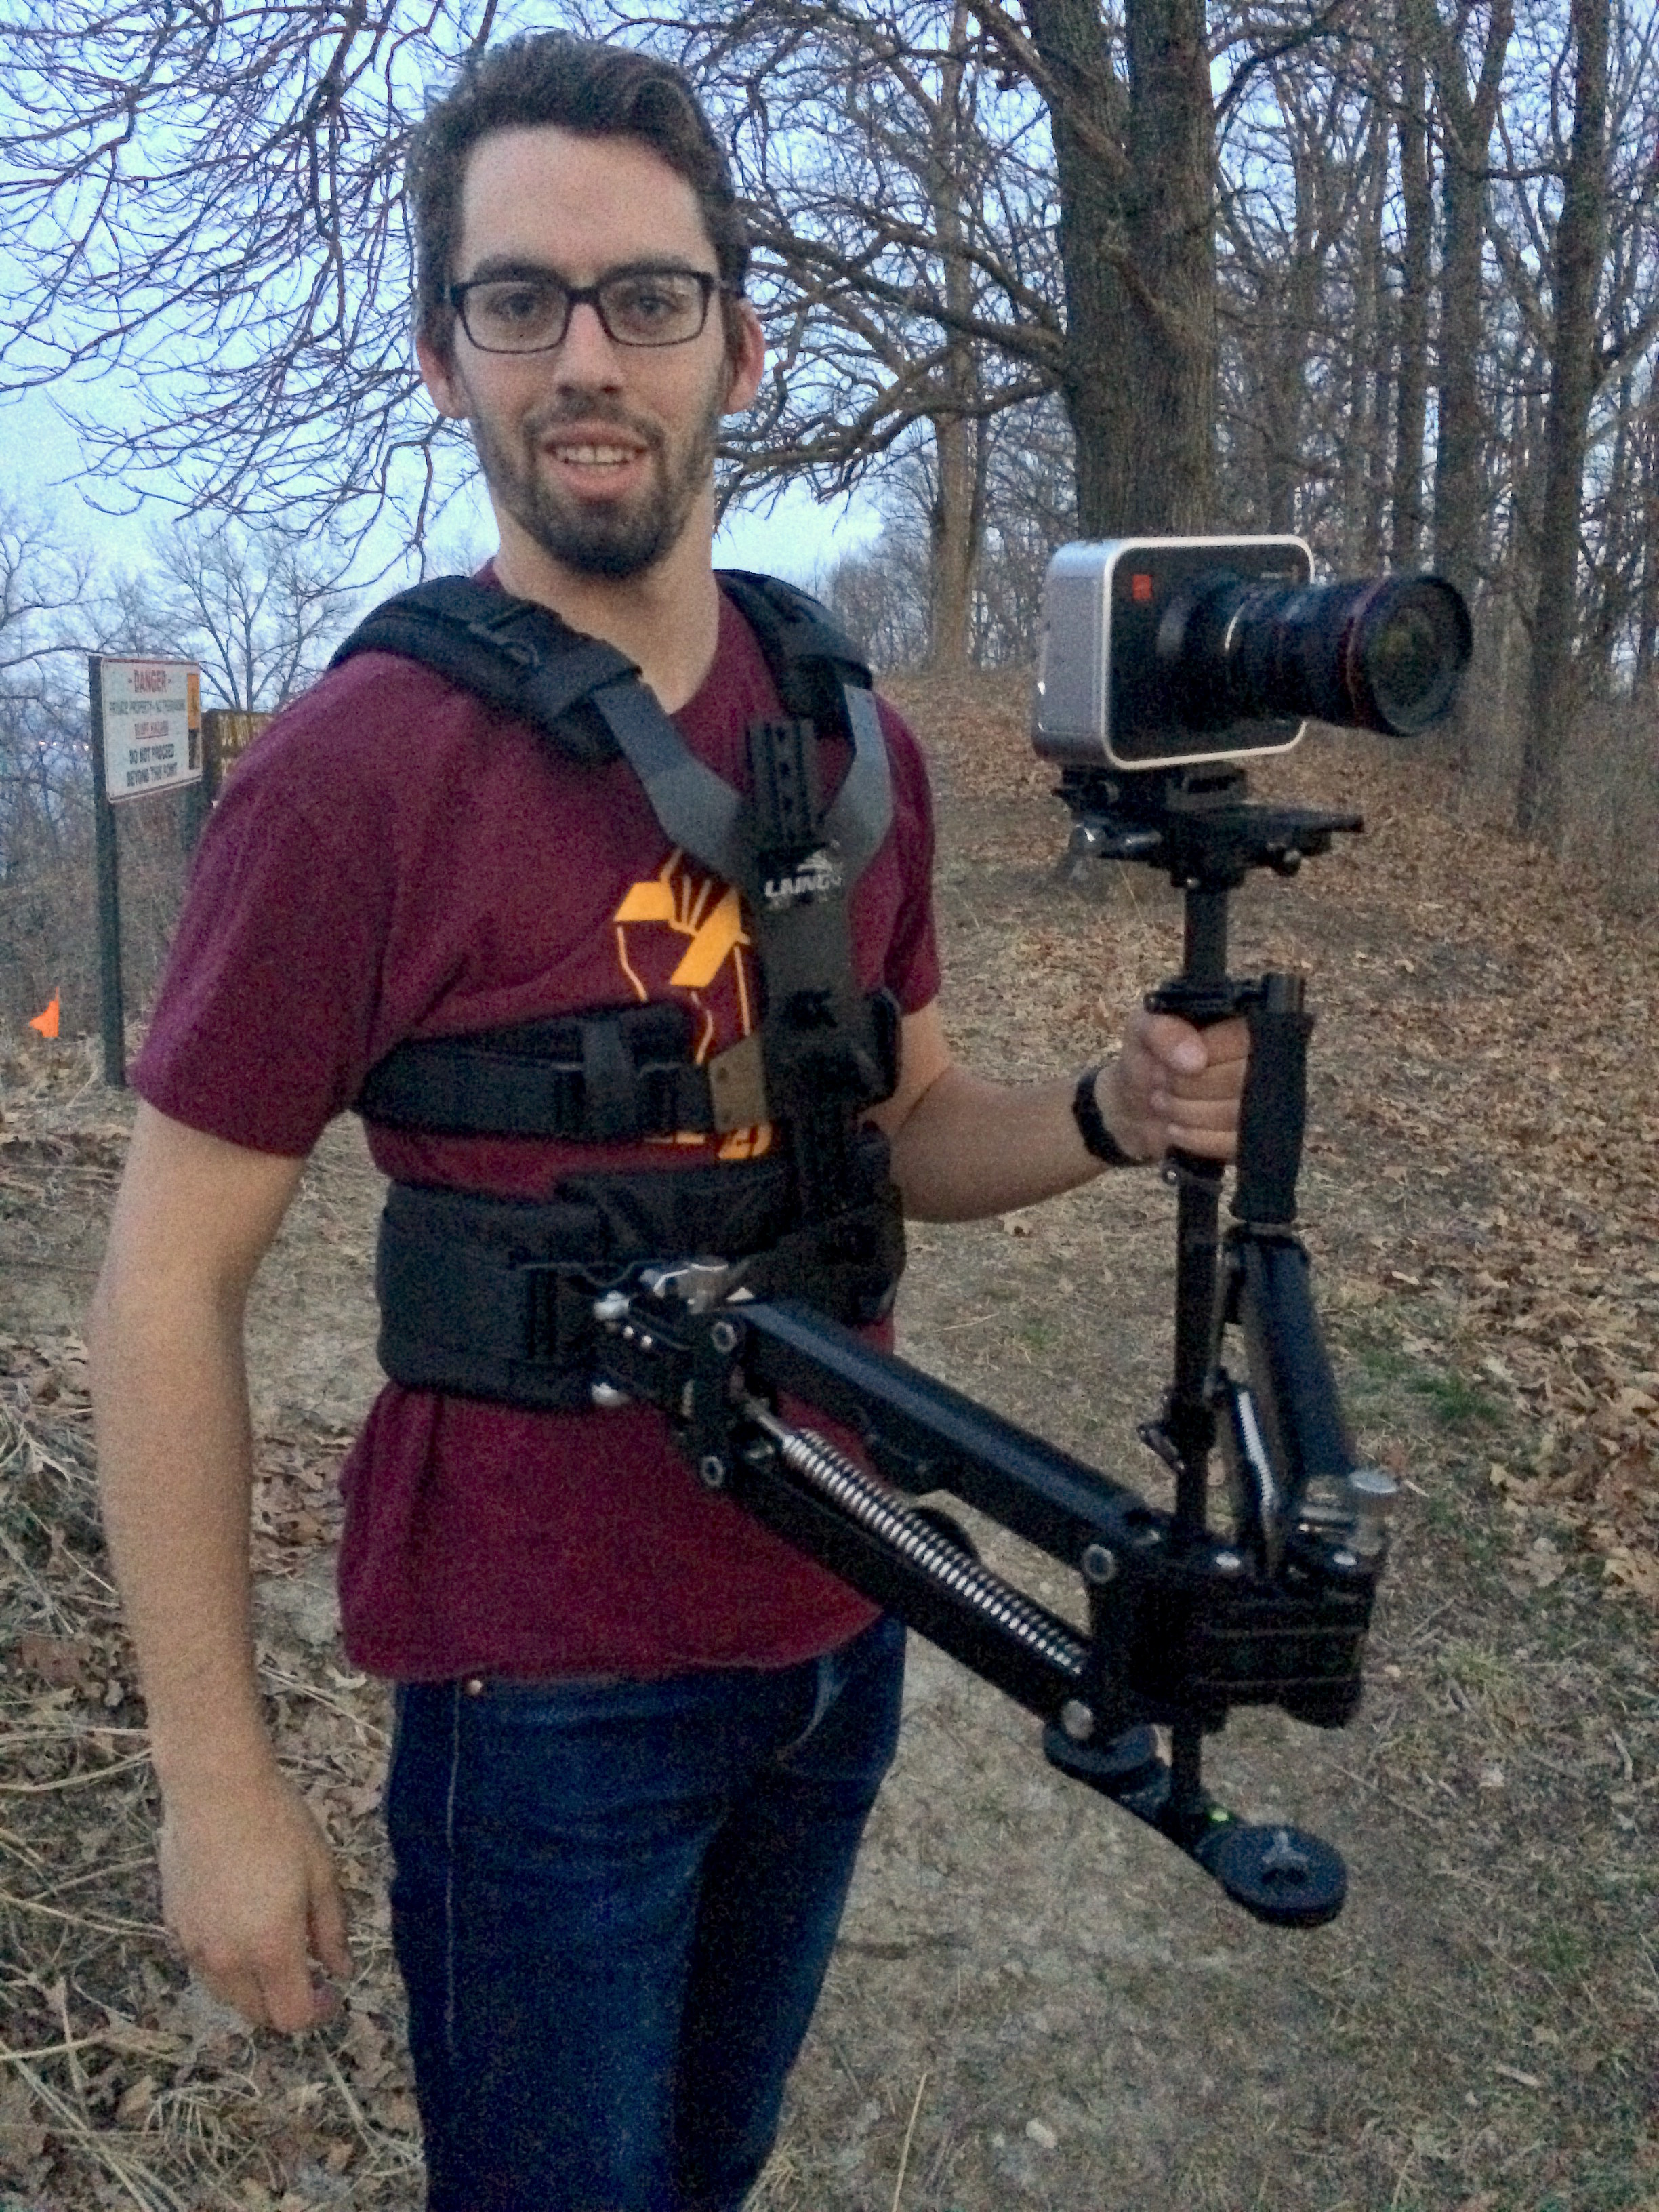 Shot of me with the BMPC and Glidecam while waiting for the light